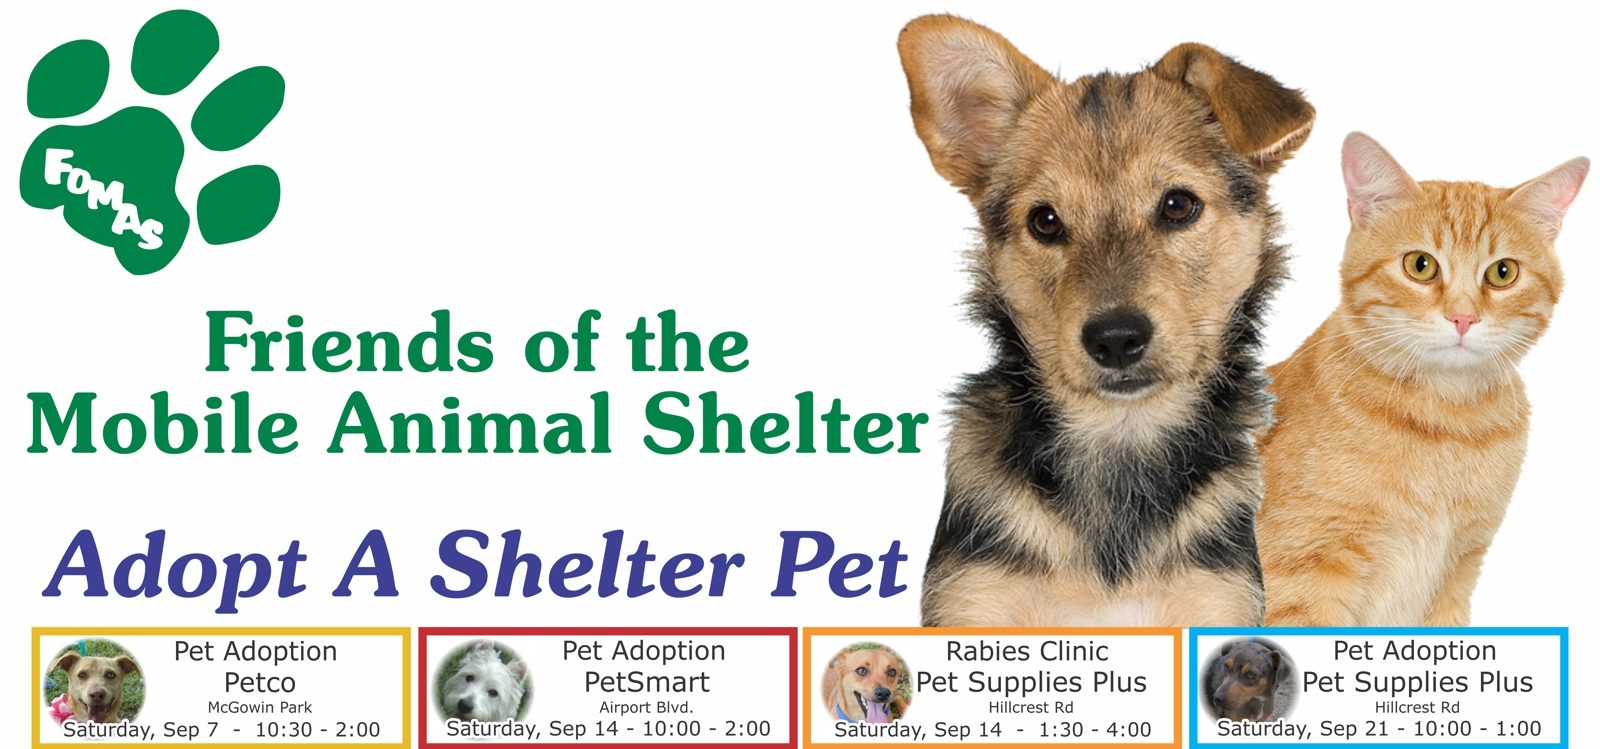 Friends of the Mobile Animal Shelter